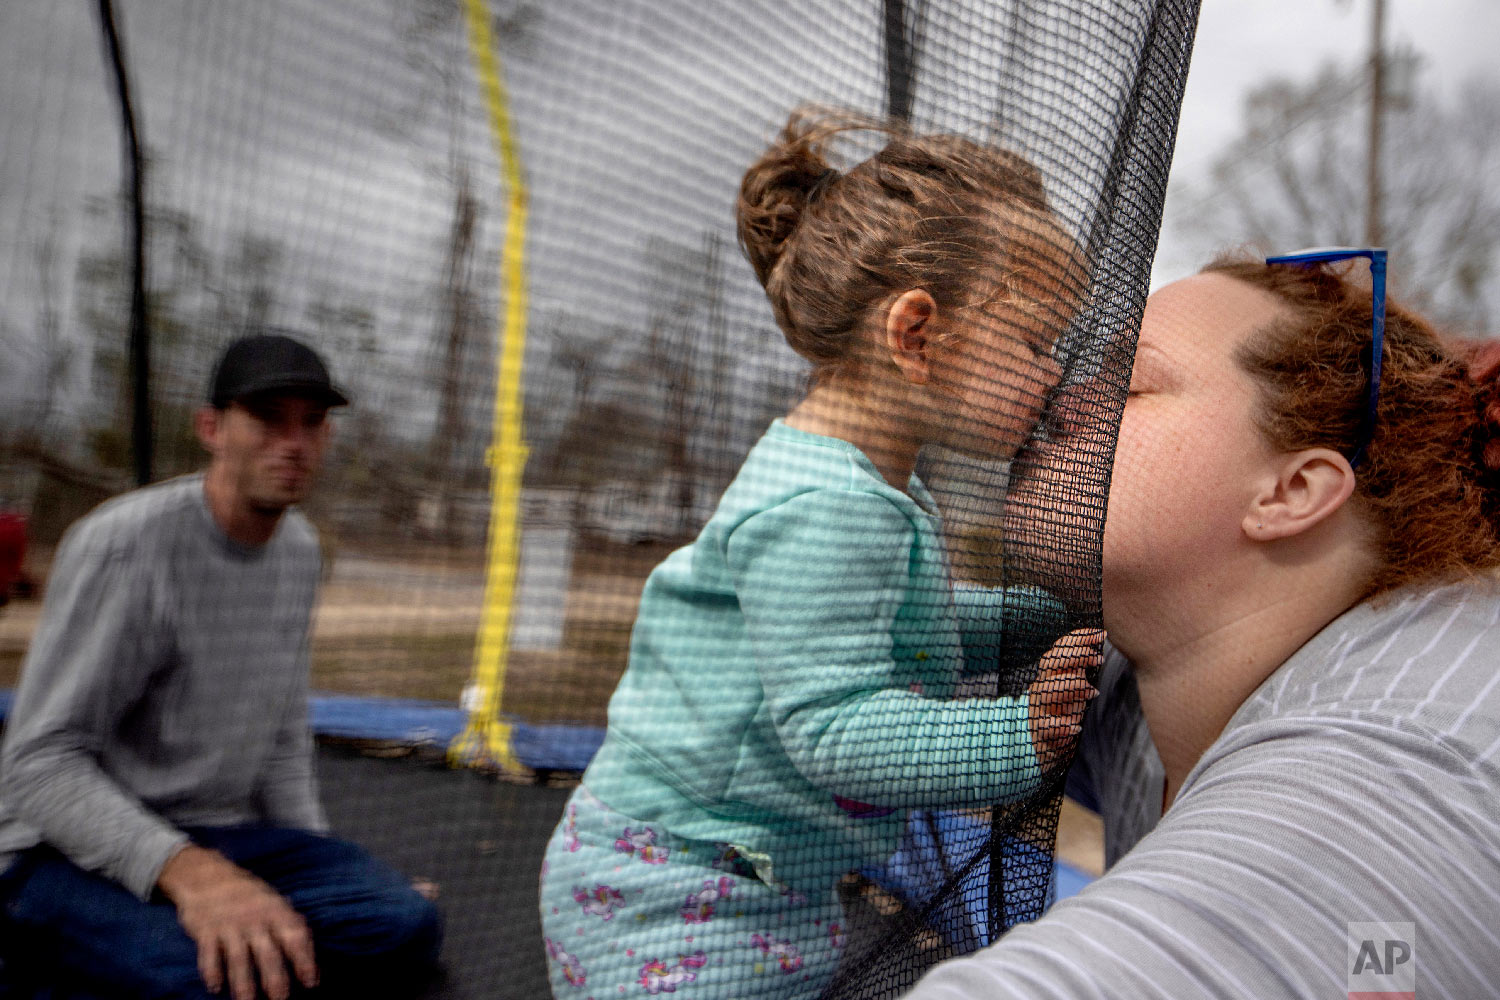 Mystie Gregory, right, kisses her twenty-month-old daughter Neala as her fiancé Gary LaPlant looks on while playing on a trampoline in the backyard where several local residents are living in tents after becoming homeless from Hurricane Michael in Youngstown, Fla, Wednesday, Jan. 23, 2019. (AP Photo/David Goldman)